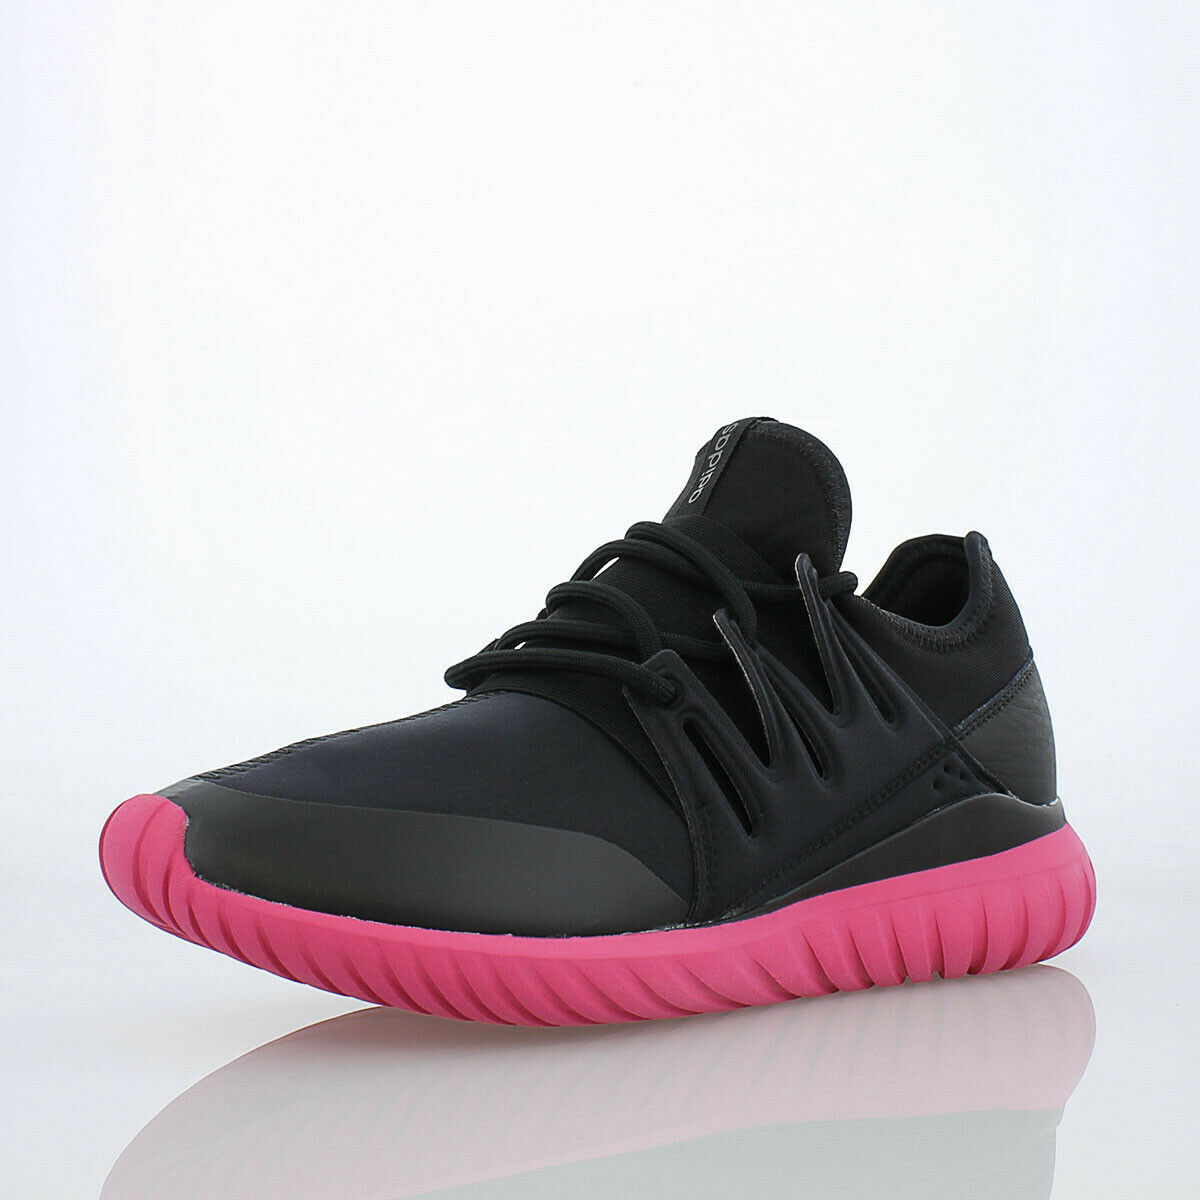 Adidas Tubular Radial Men's shoes Core Black Equipment Pink s75393